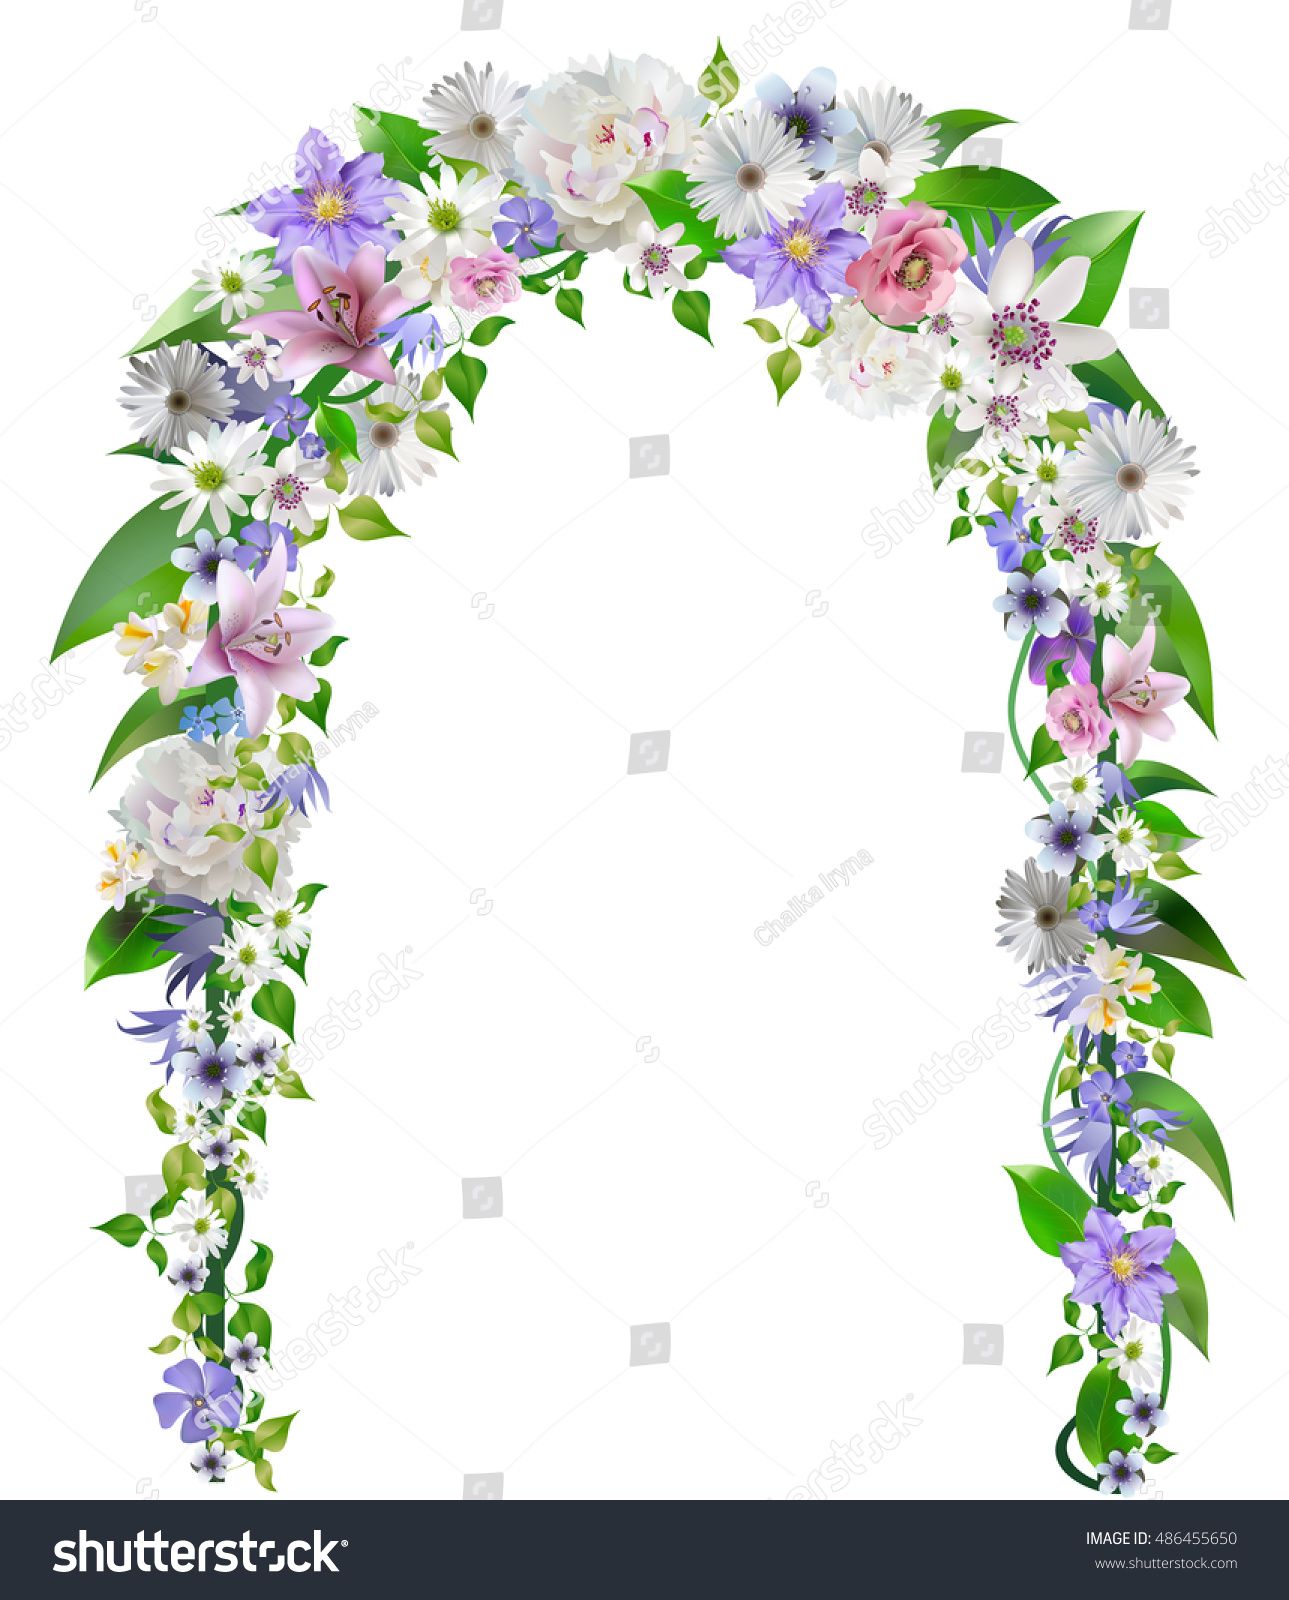 Wedding Decorations Wedding Arch Overgrown Flowers Stock Vector